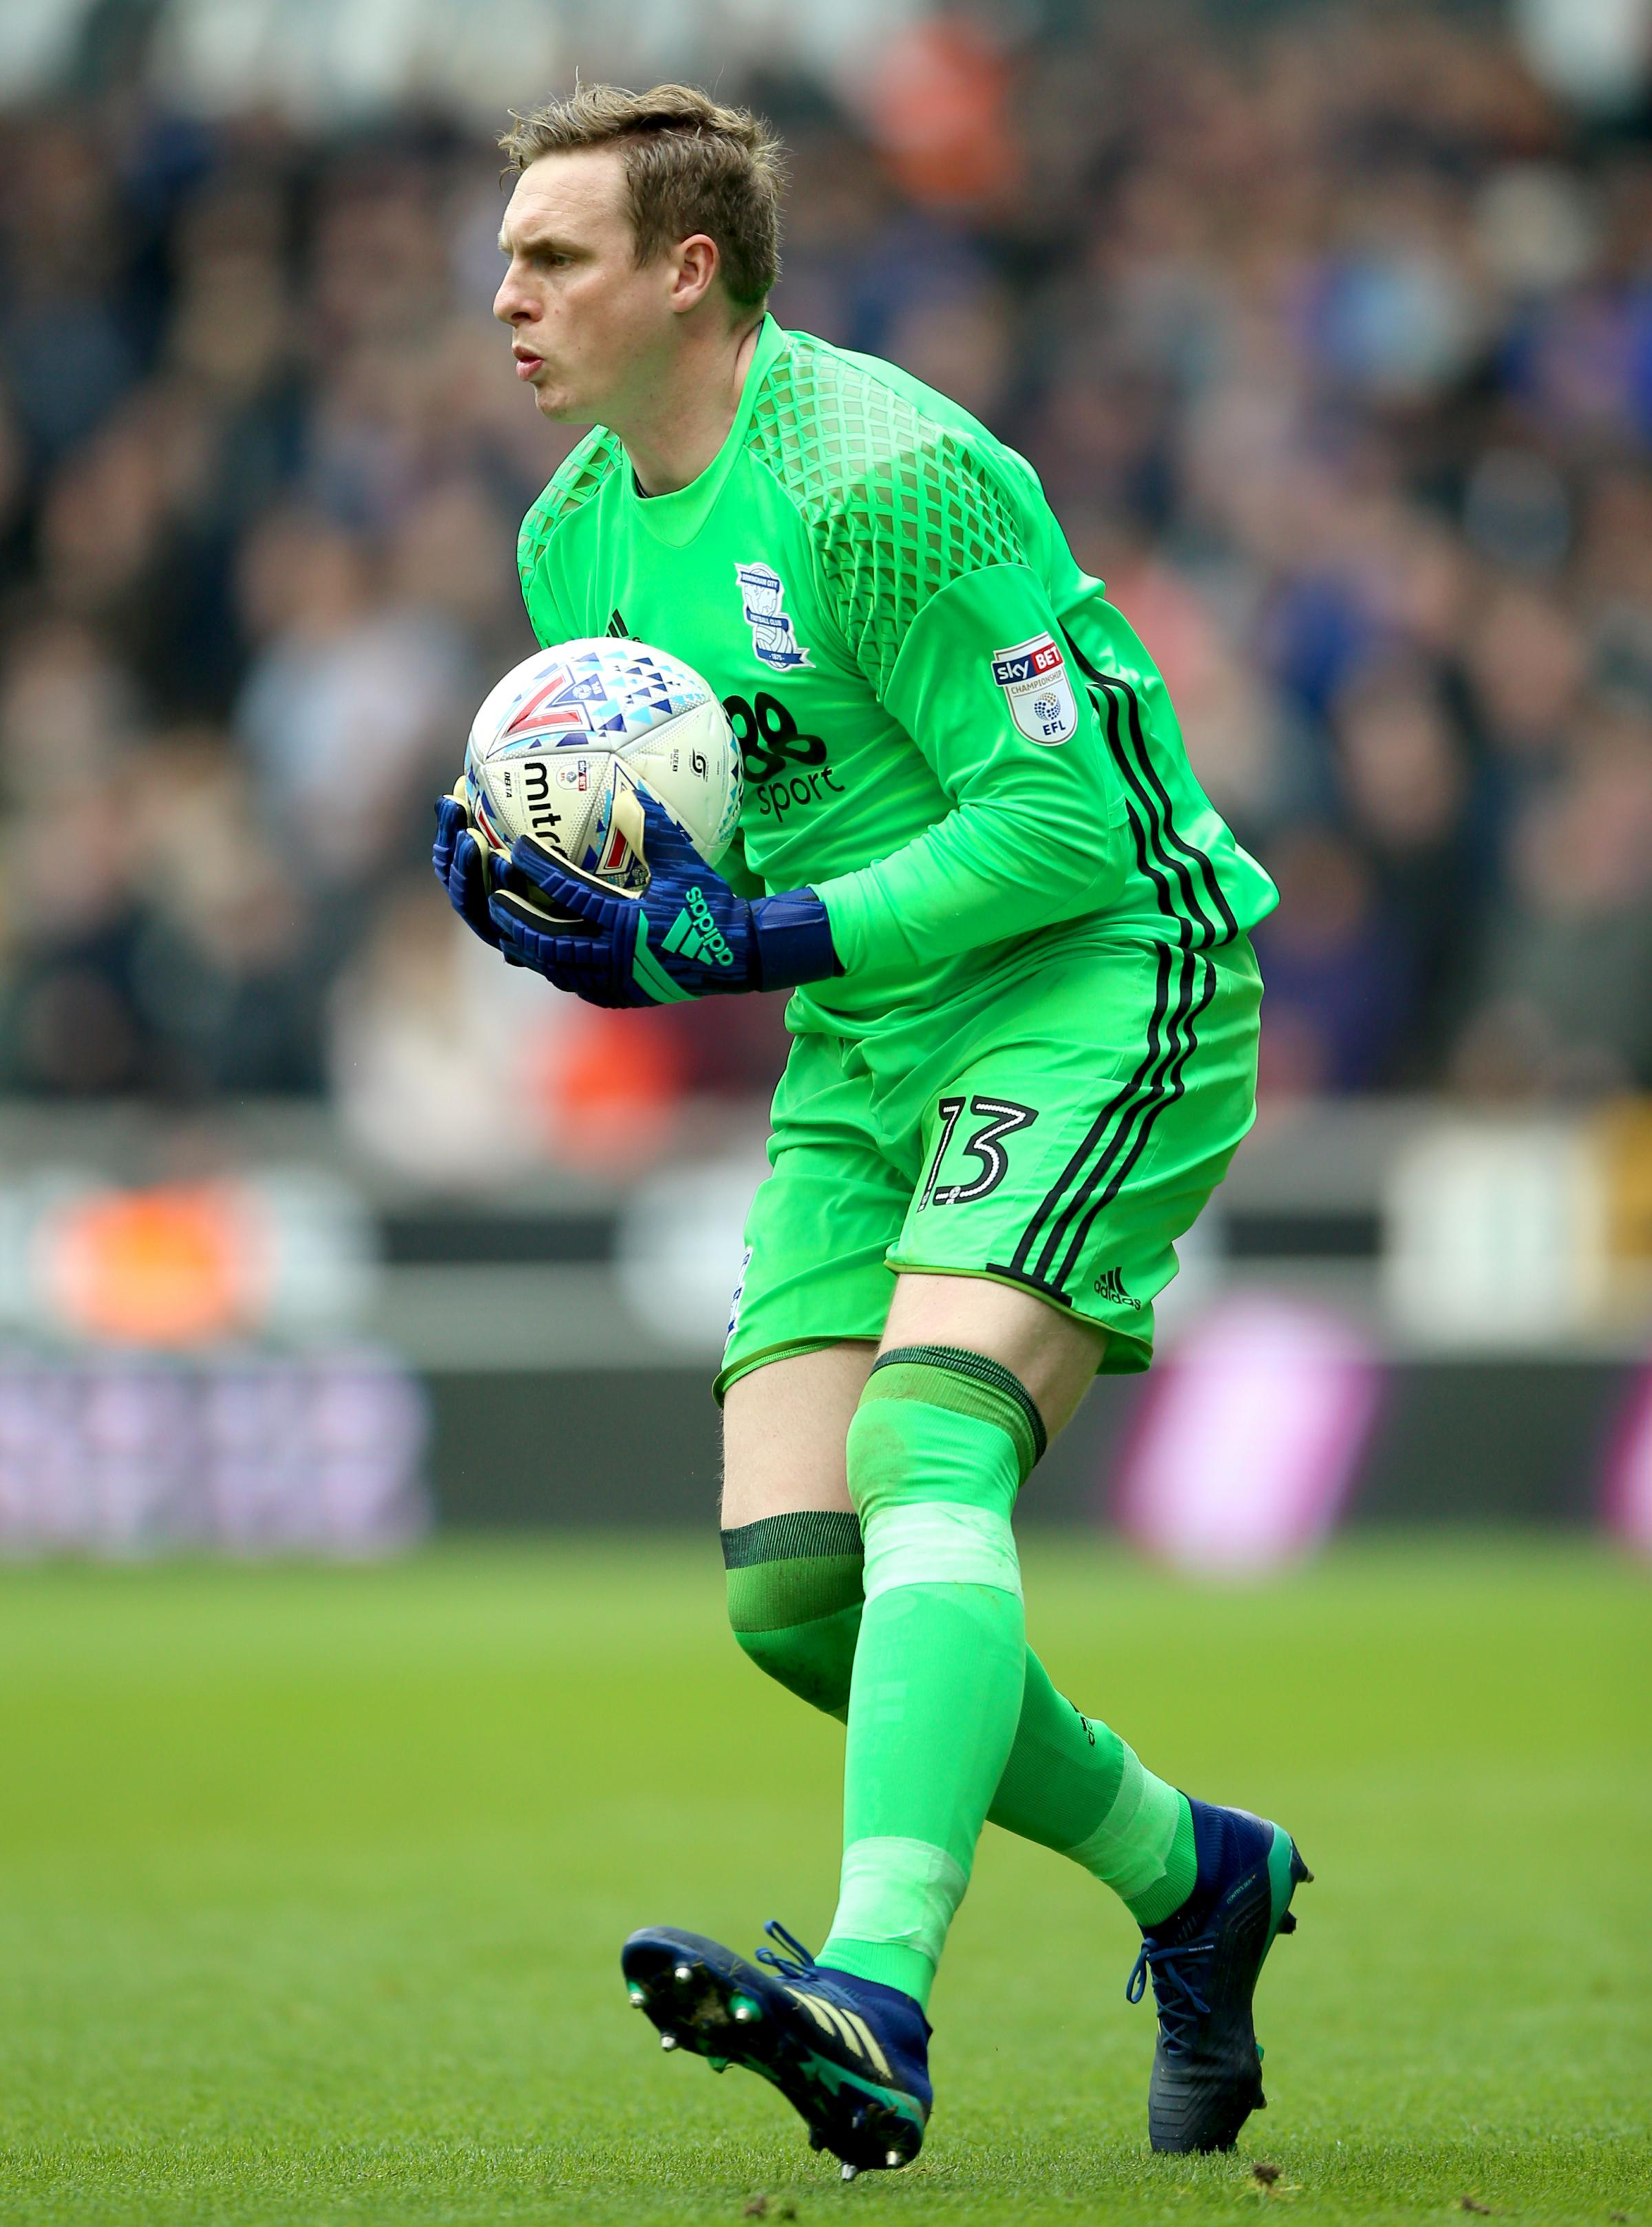 Joining on loan - goalkeeper David Stockdale has joined Southend United